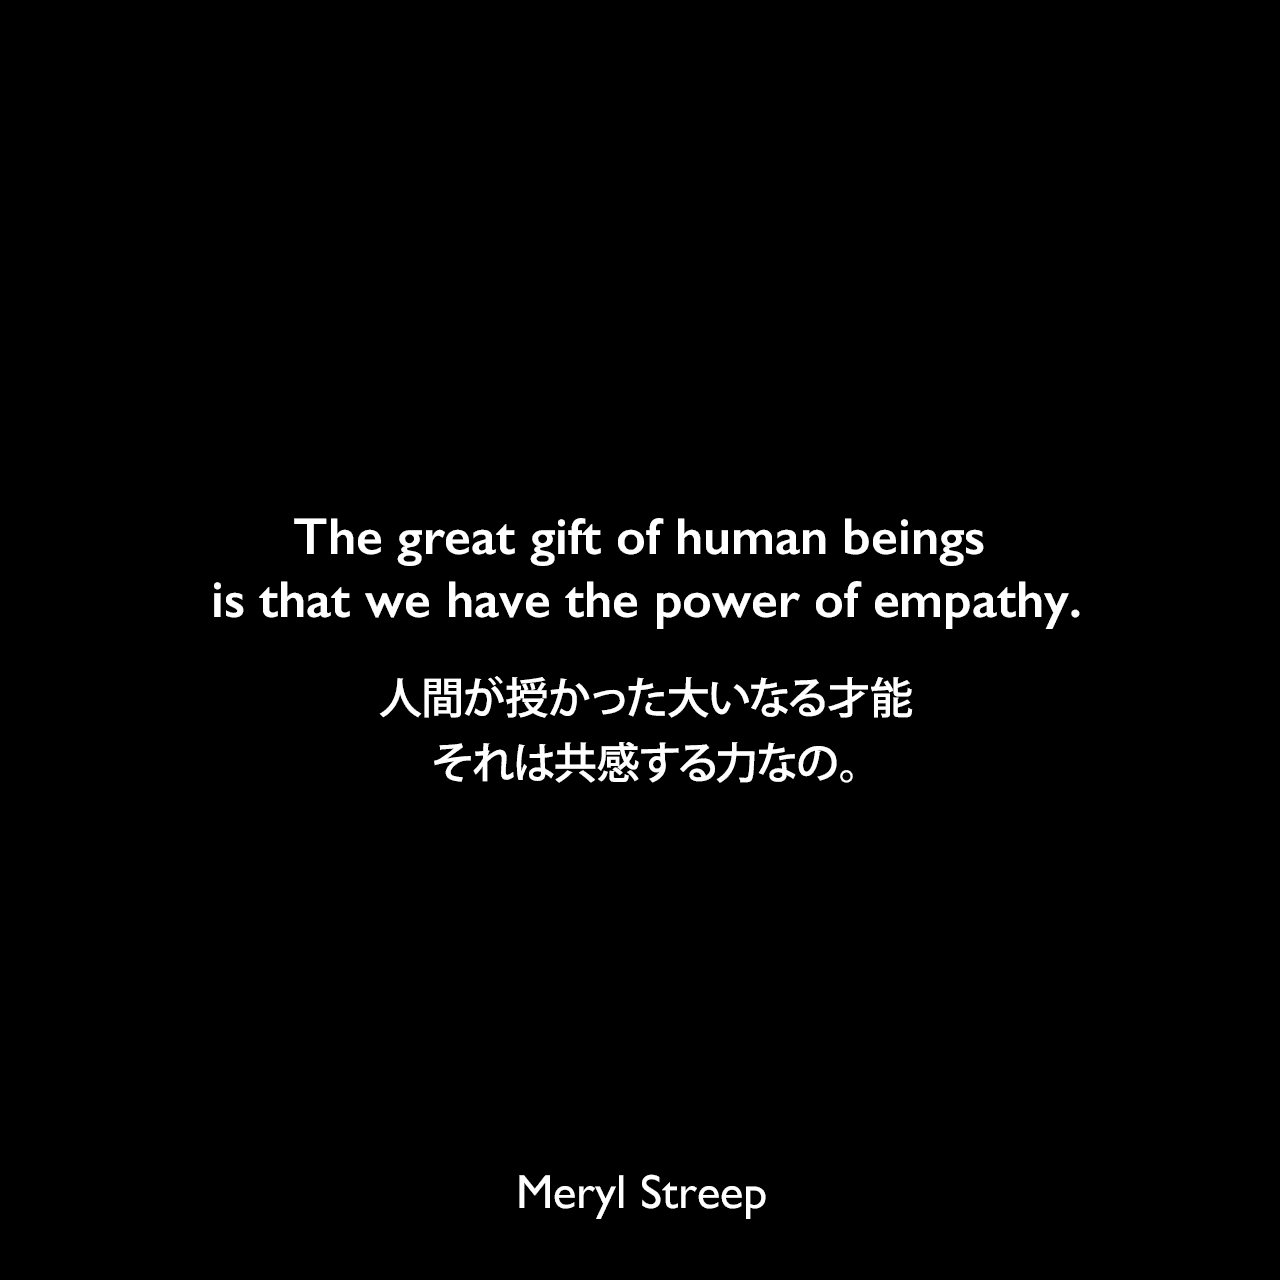 The great gift of human beings is that we have the power of empathy.人間が授かった大いなる才能、それは共感する力なの。Meryl Streep